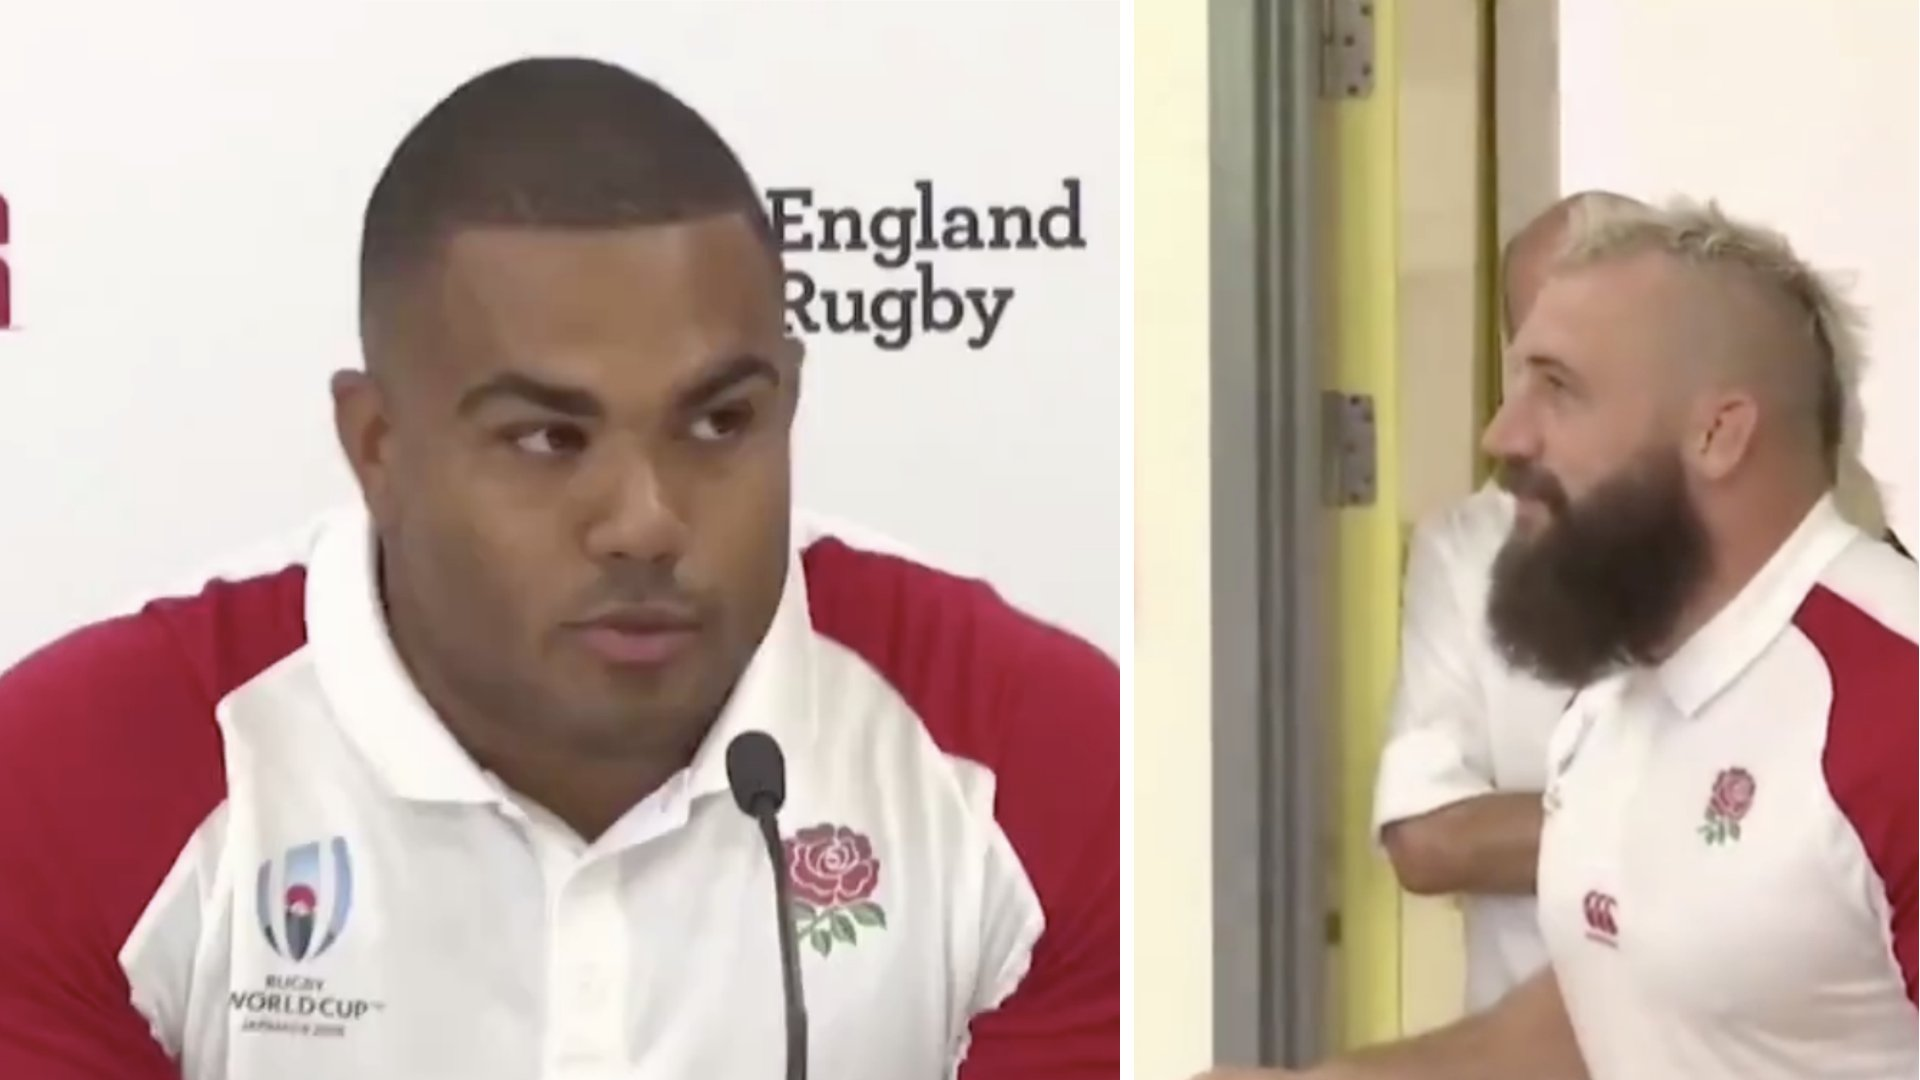 Joe Marler hilariously interrupts England team mates in middle of press conference